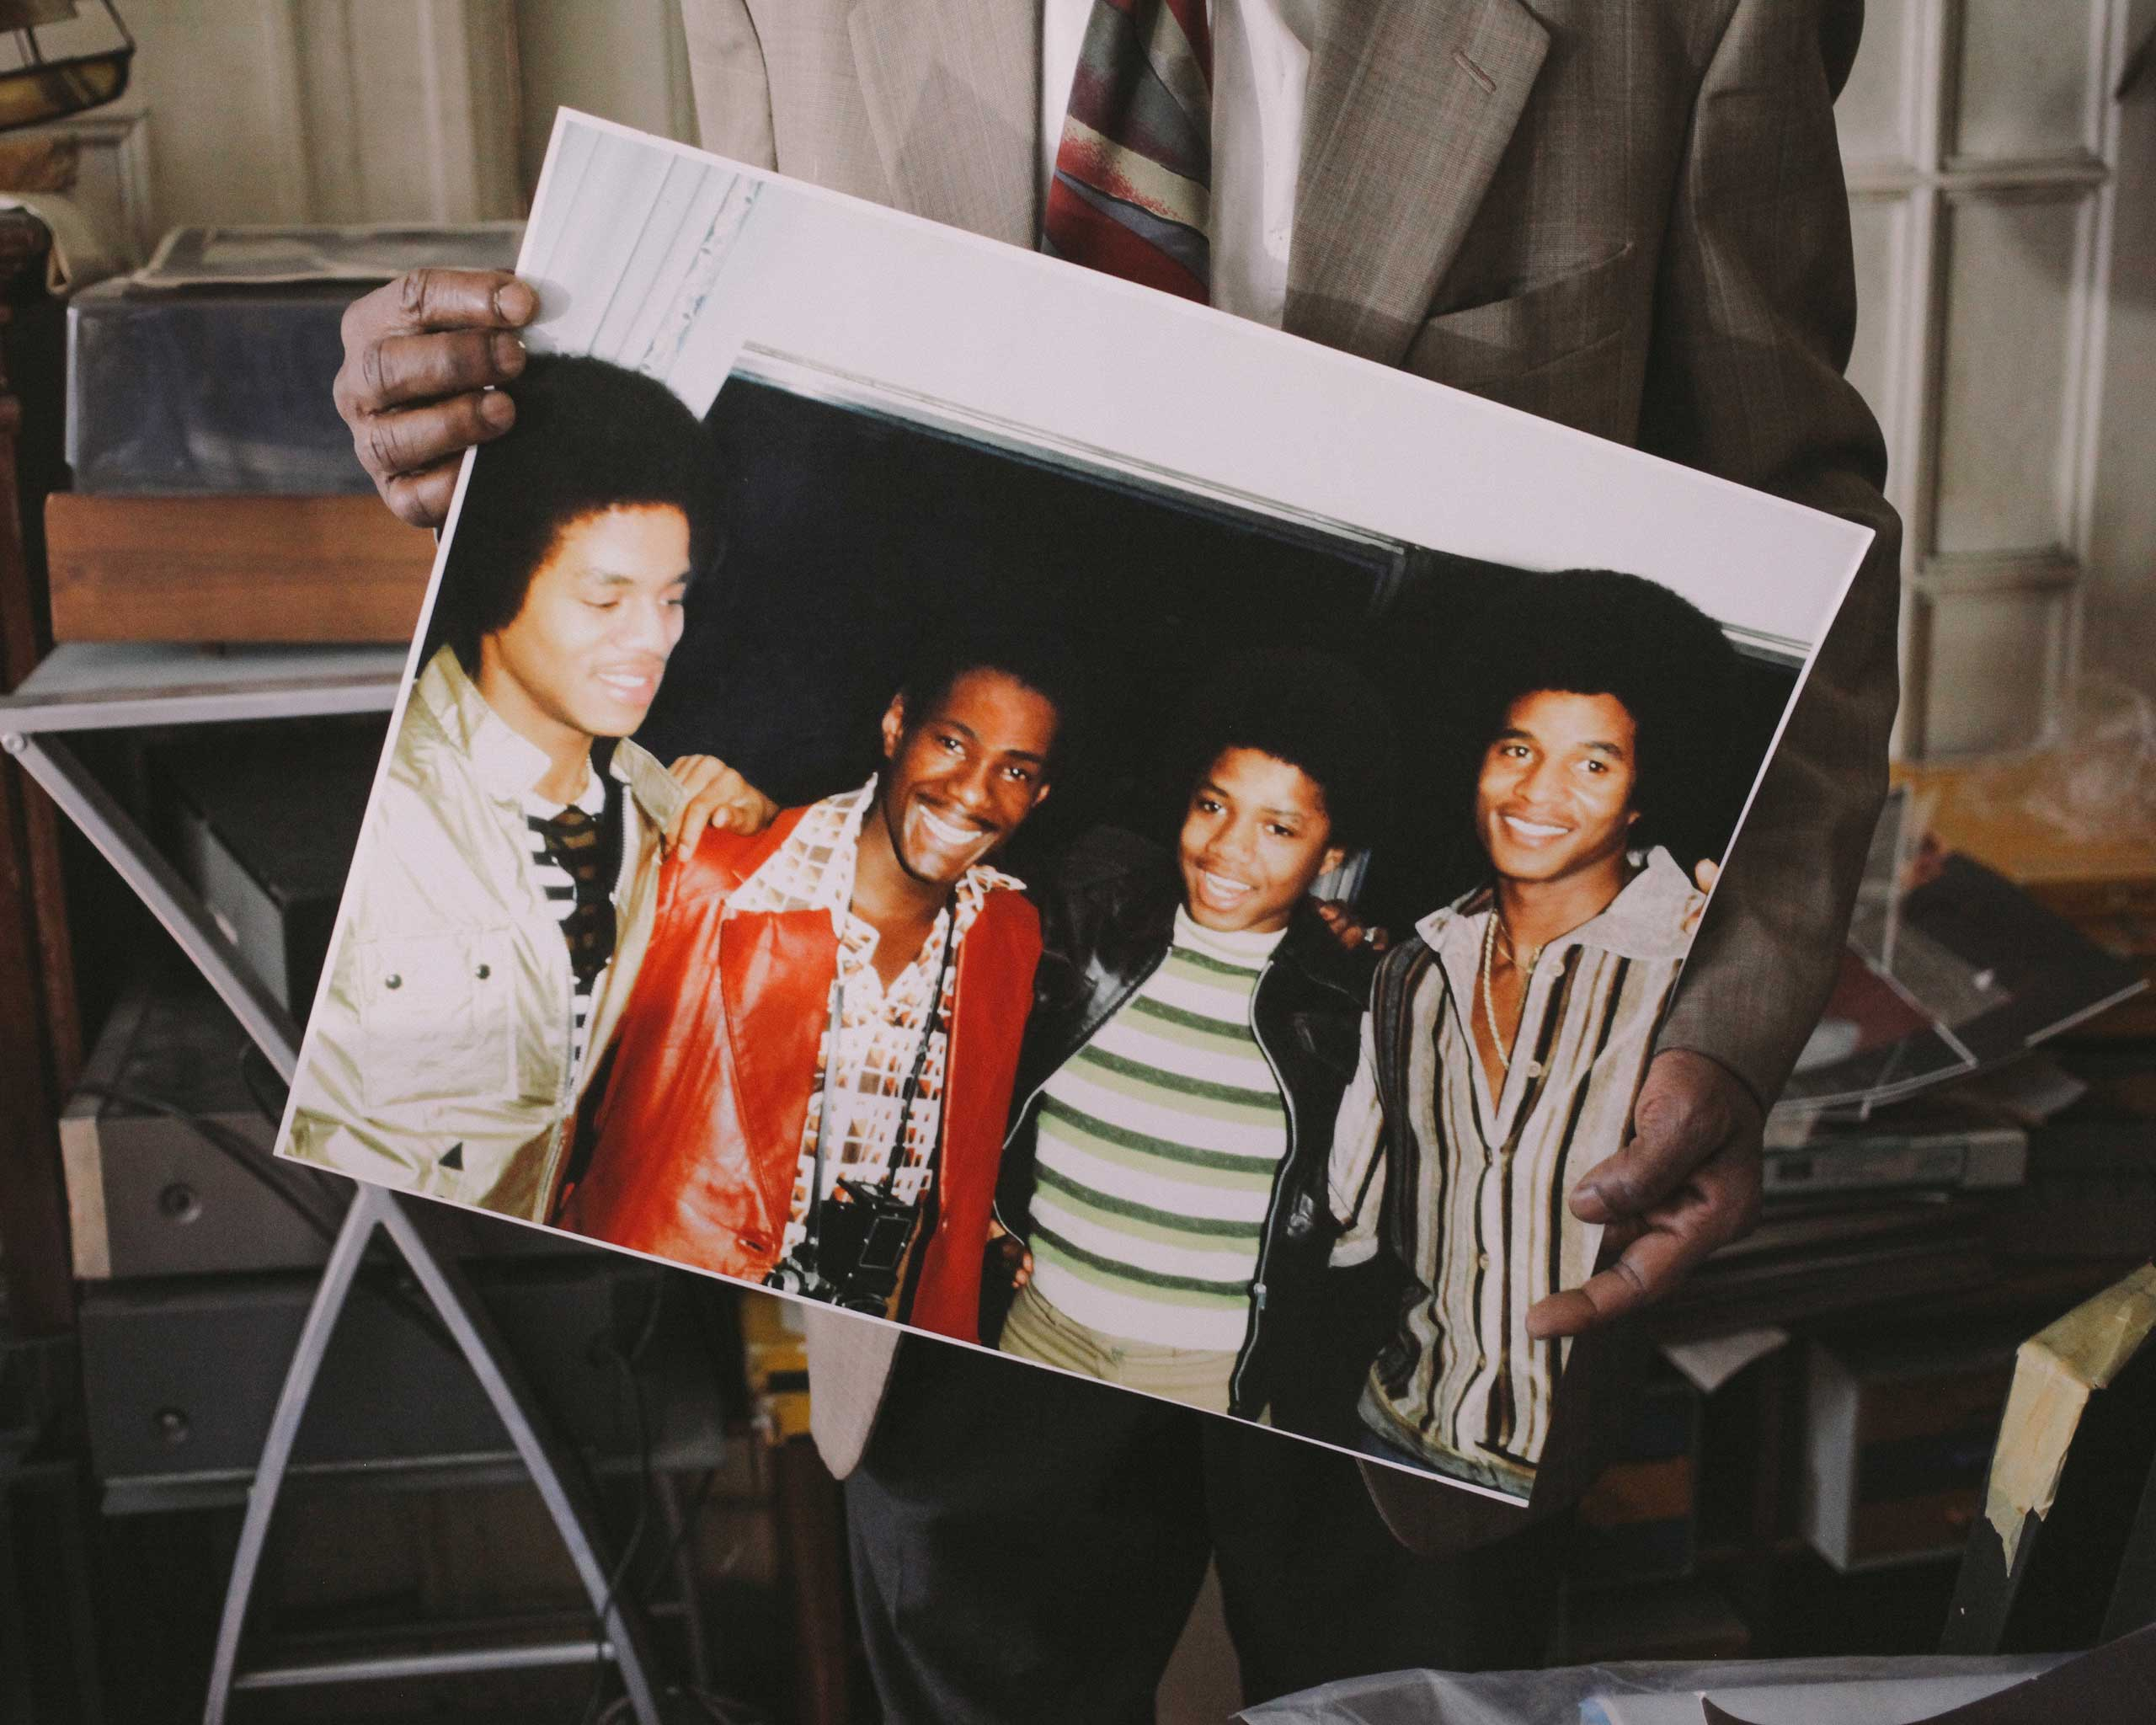 Alix Dejean holds a photo of himself with the Jacksons.